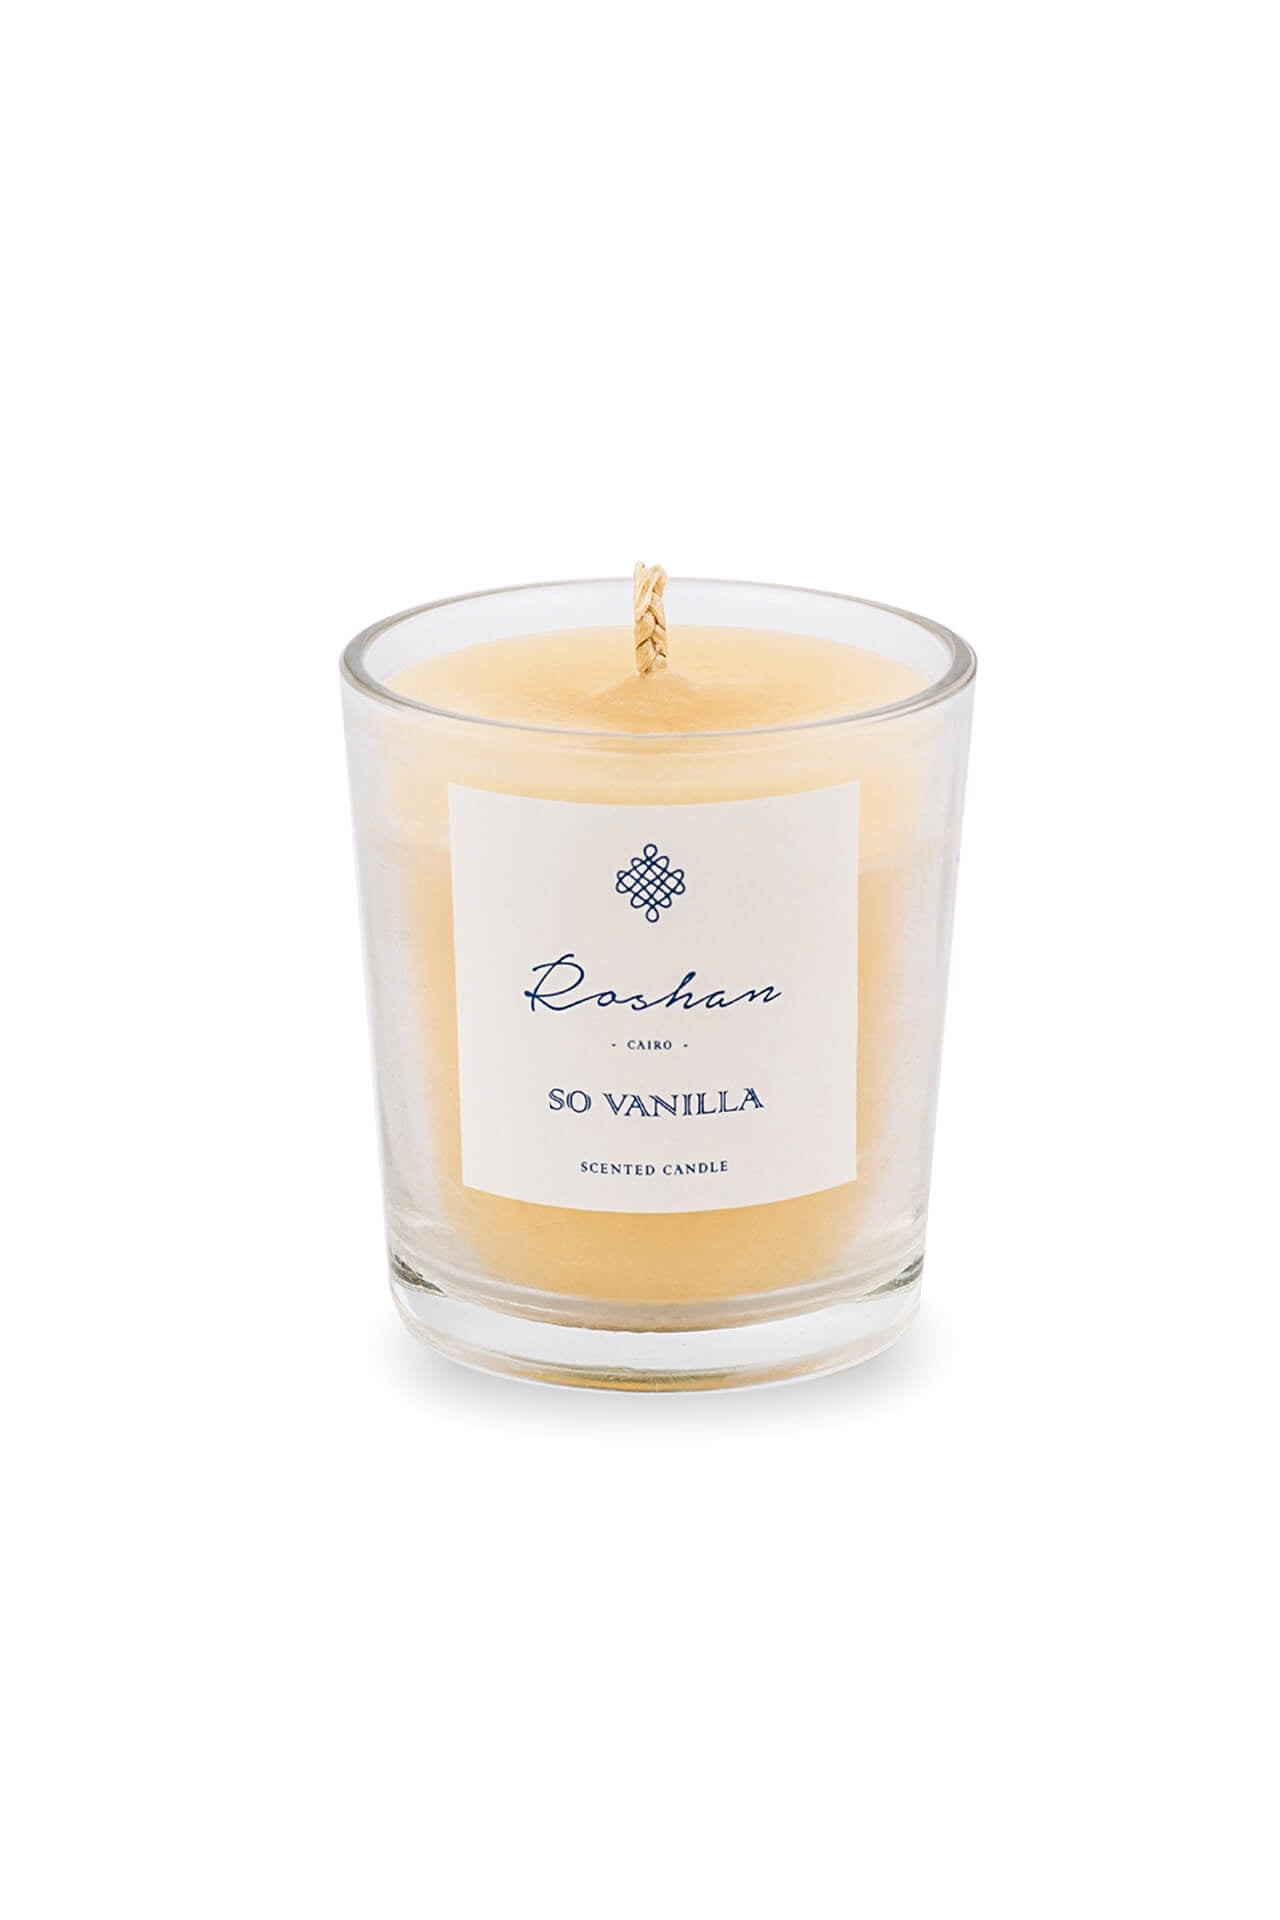 So Vanilla Candle